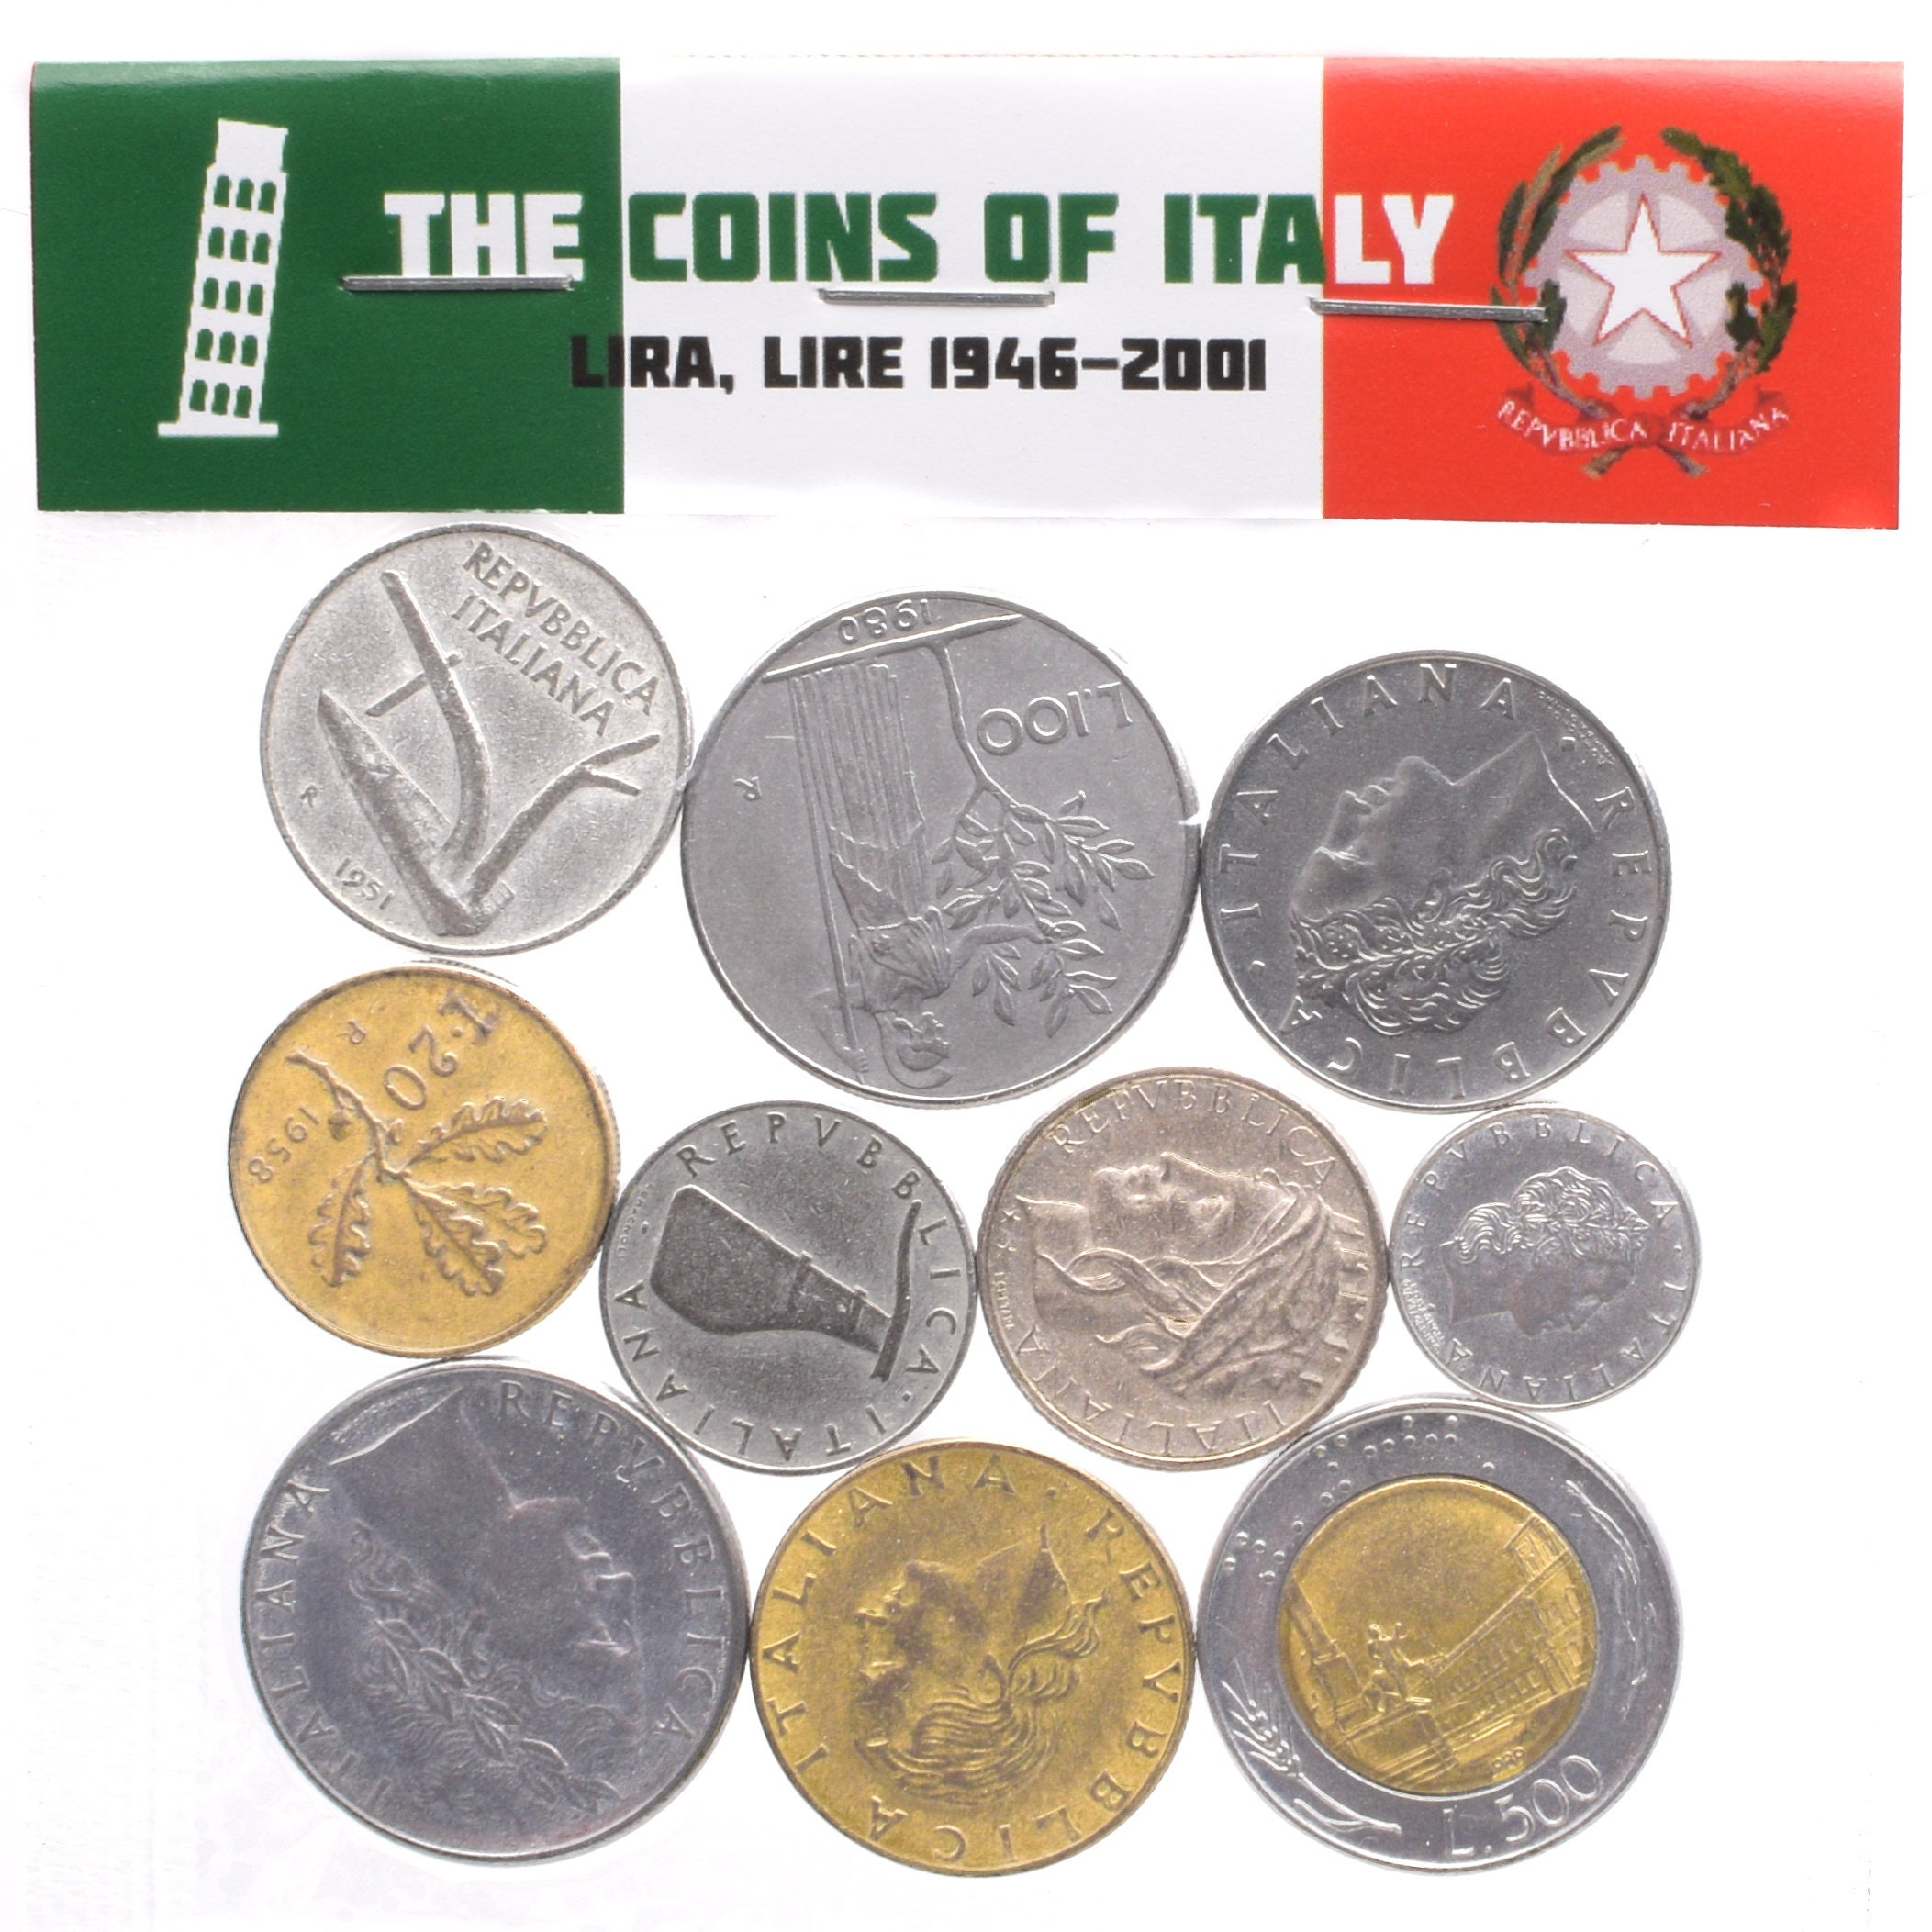 Lot Of Mixed 10 Coins 4 Pounds 18kg Italian Coins Lira Etsy